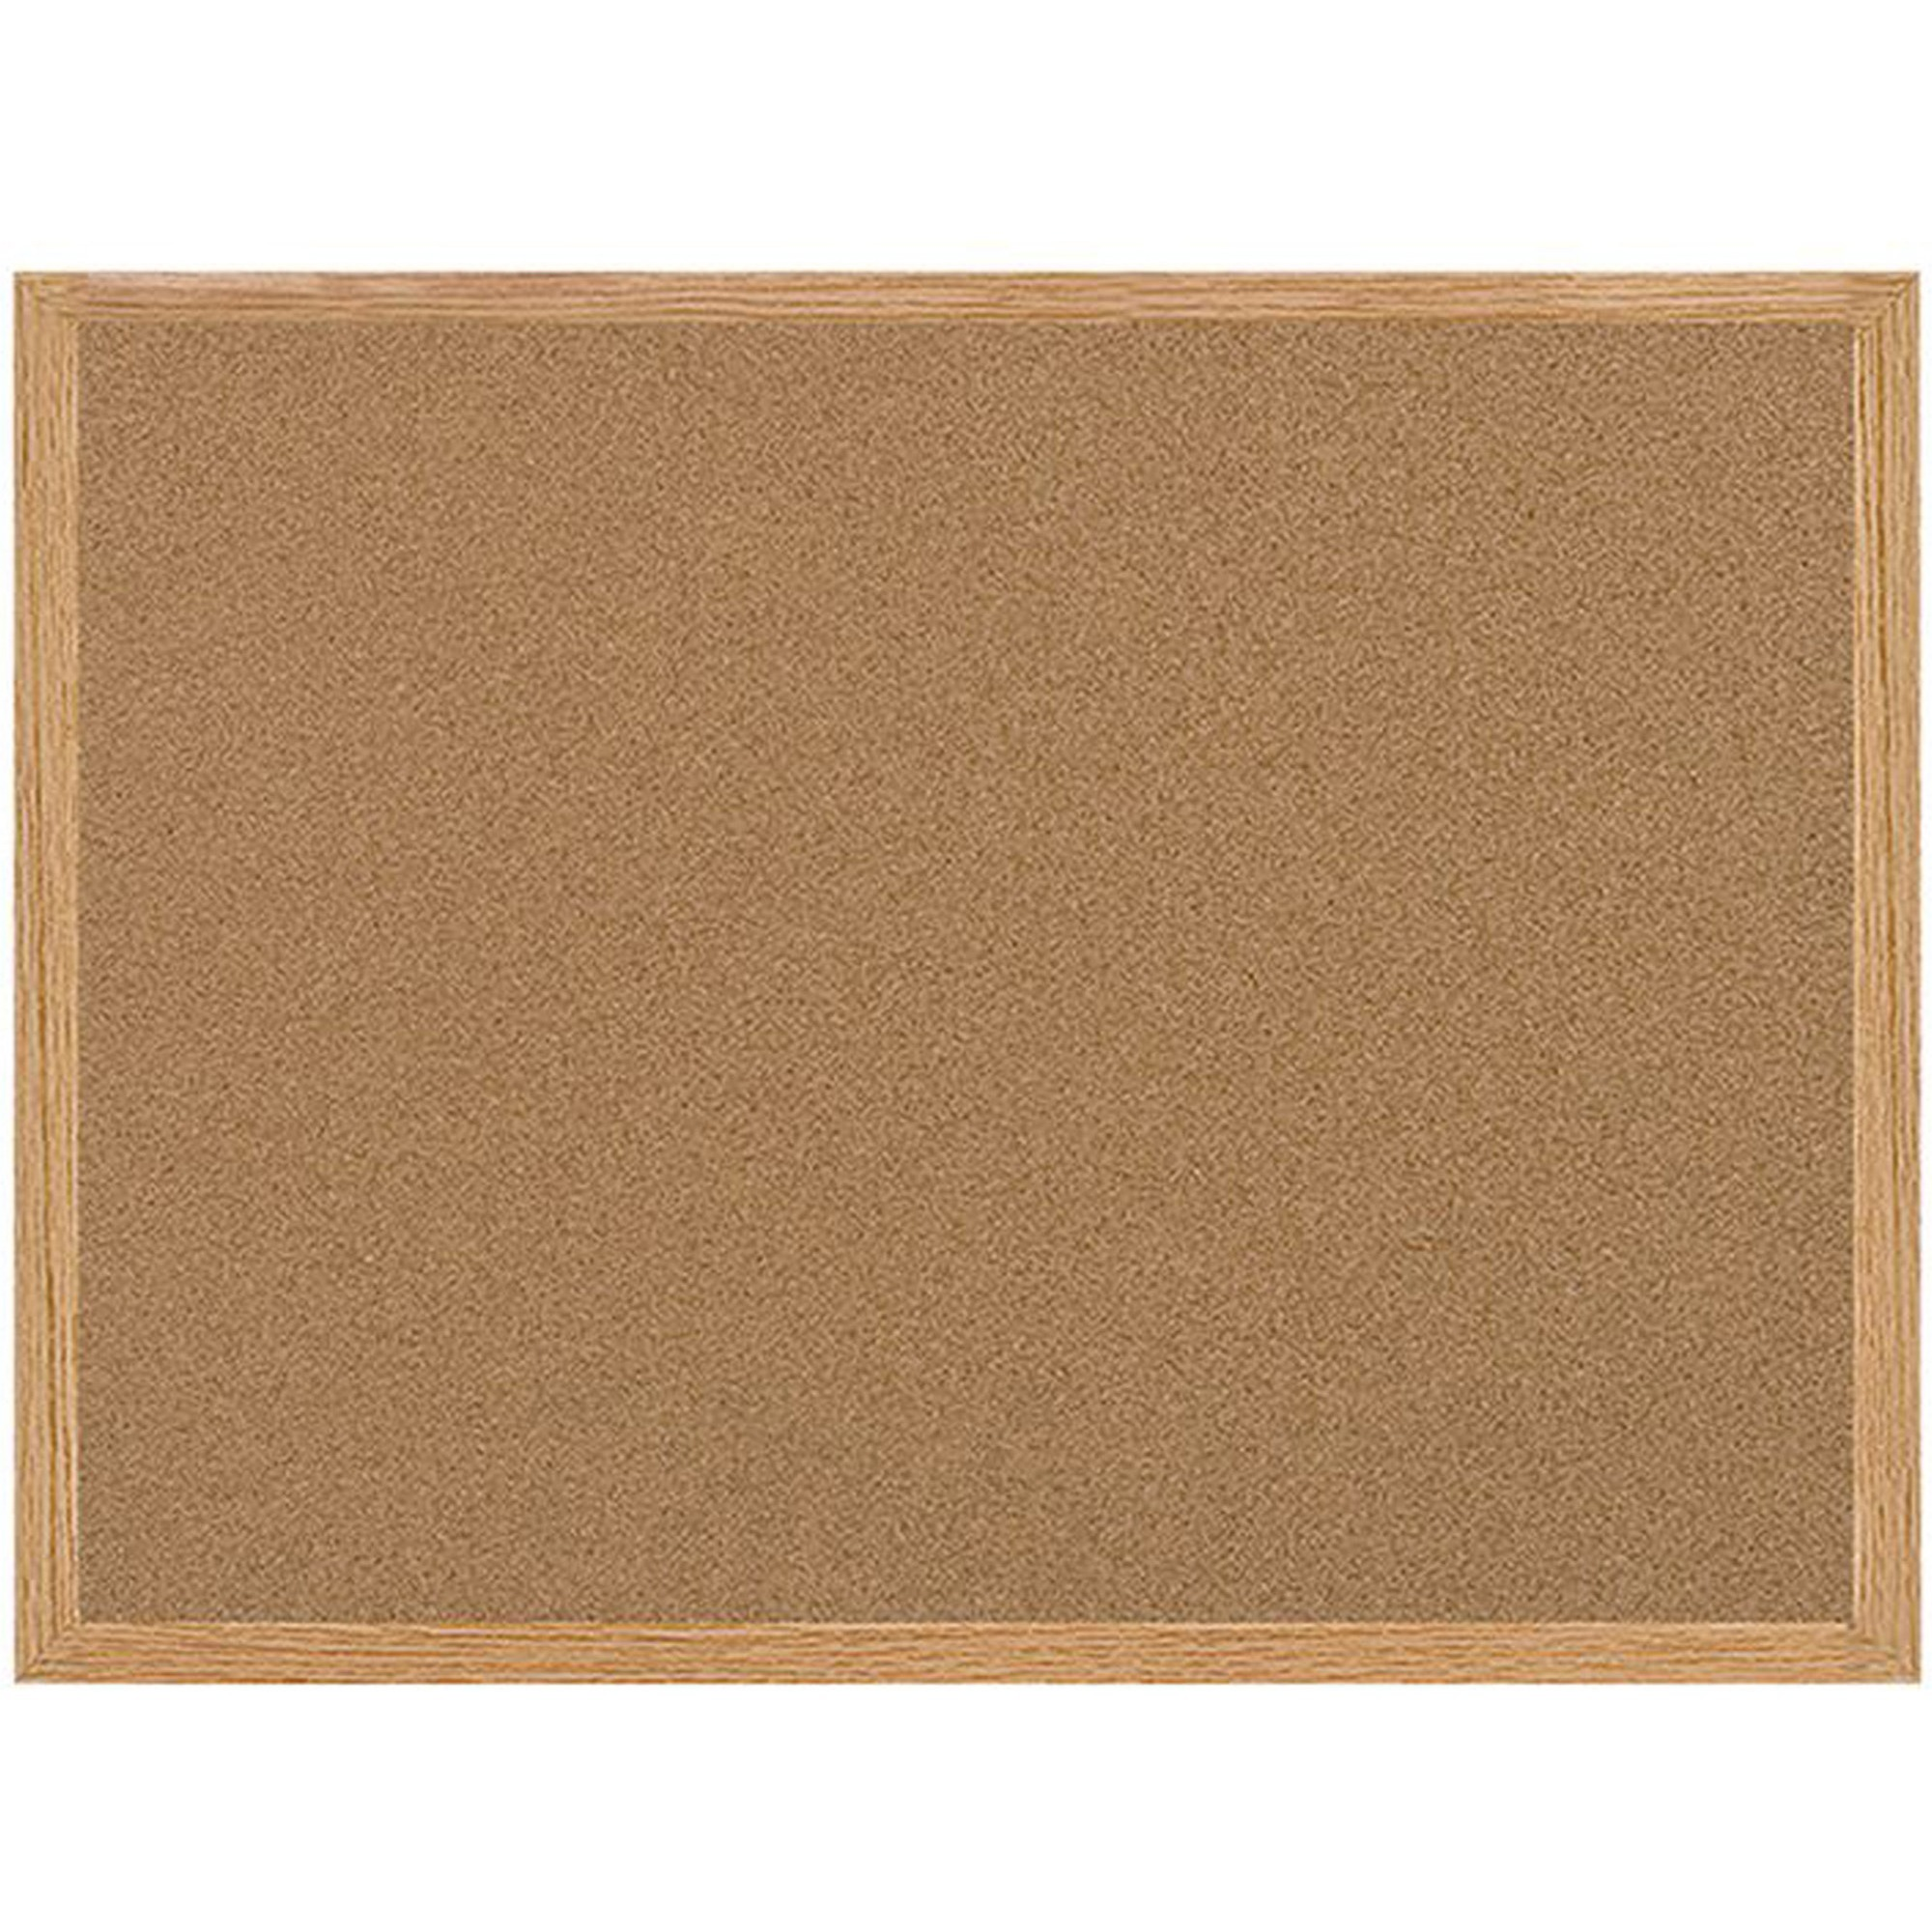 Bi-silque S.a Mastervision Recycled Cork Bulletin Boards - 36 Height X 48 Width - Cork Surface - Self-healing - Wood Frame - 1 Each